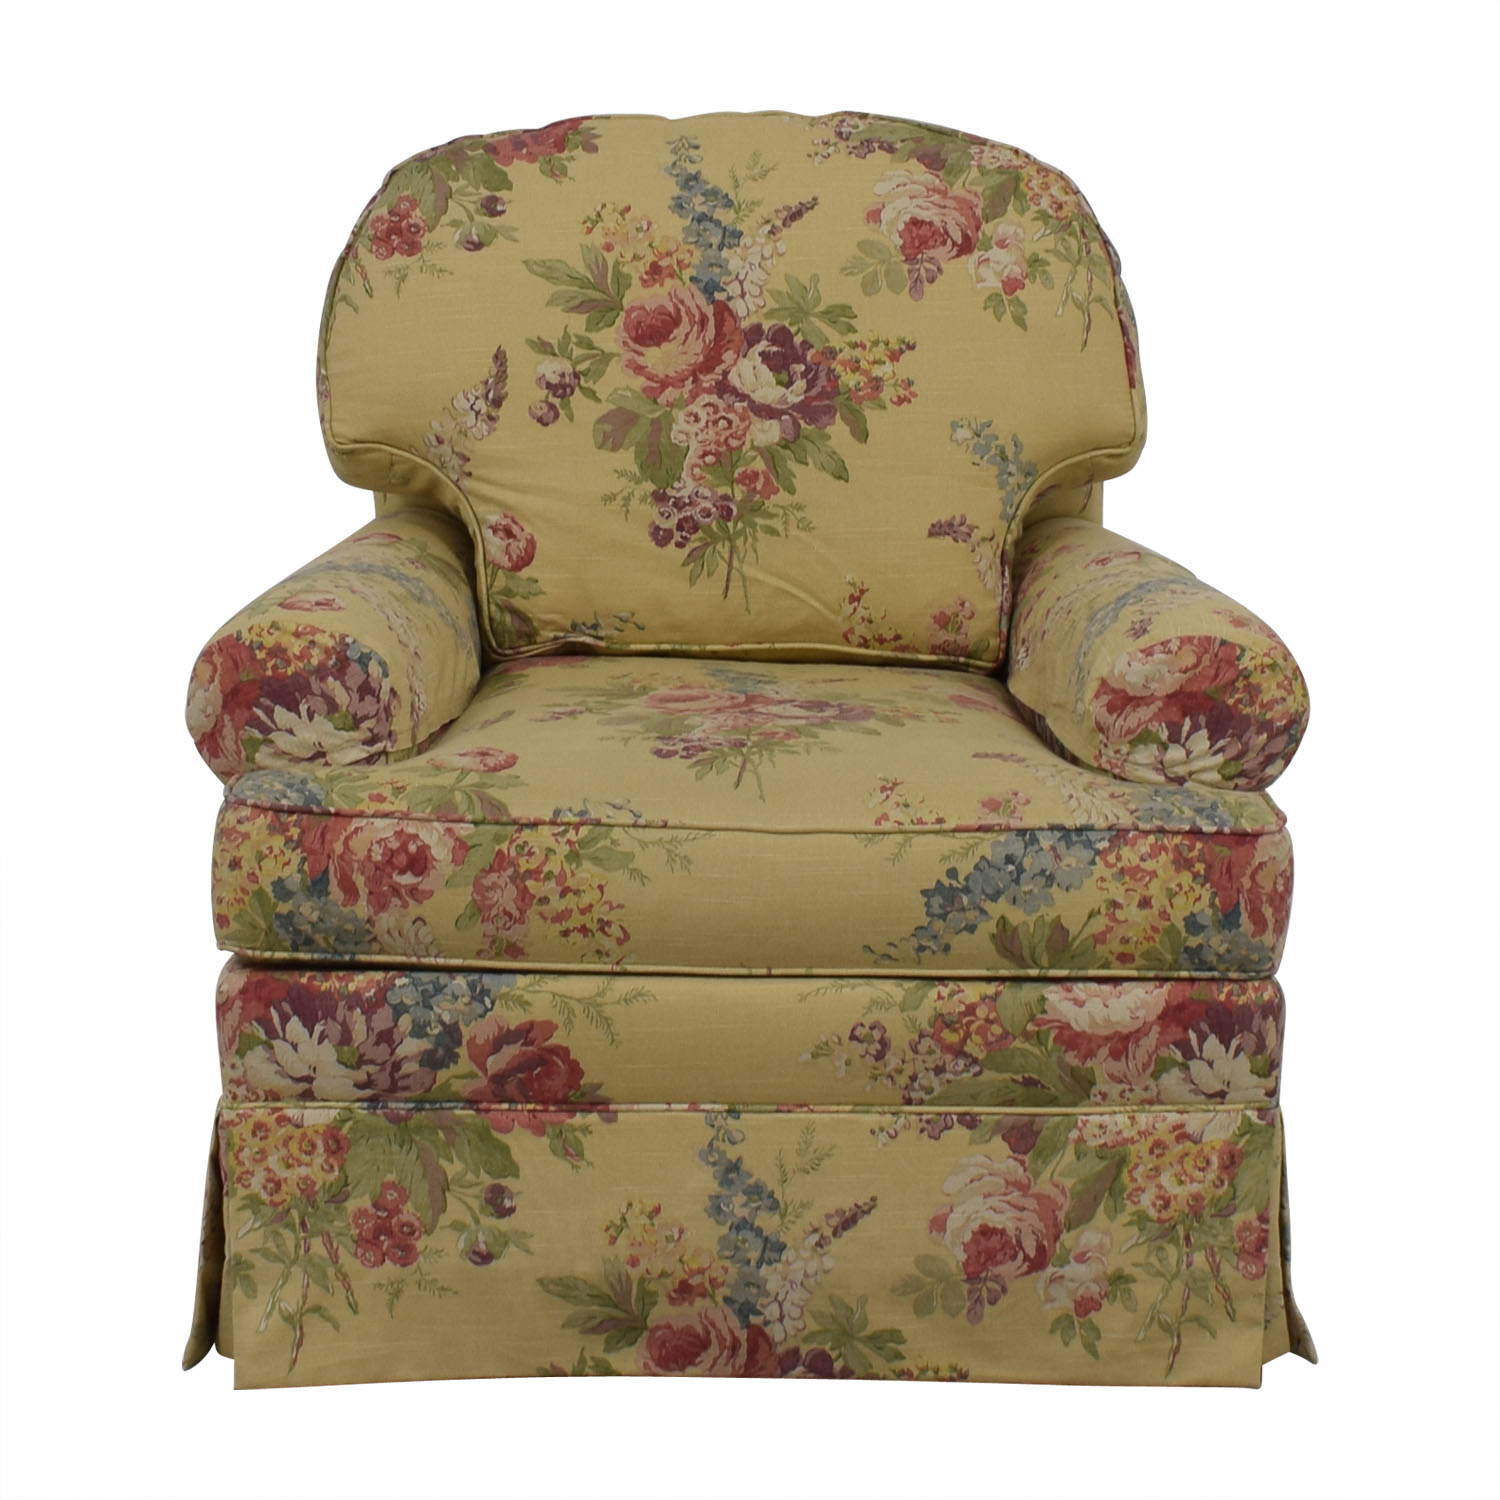 Ethan Allen Ethan Allen Floral Swivel Chair used